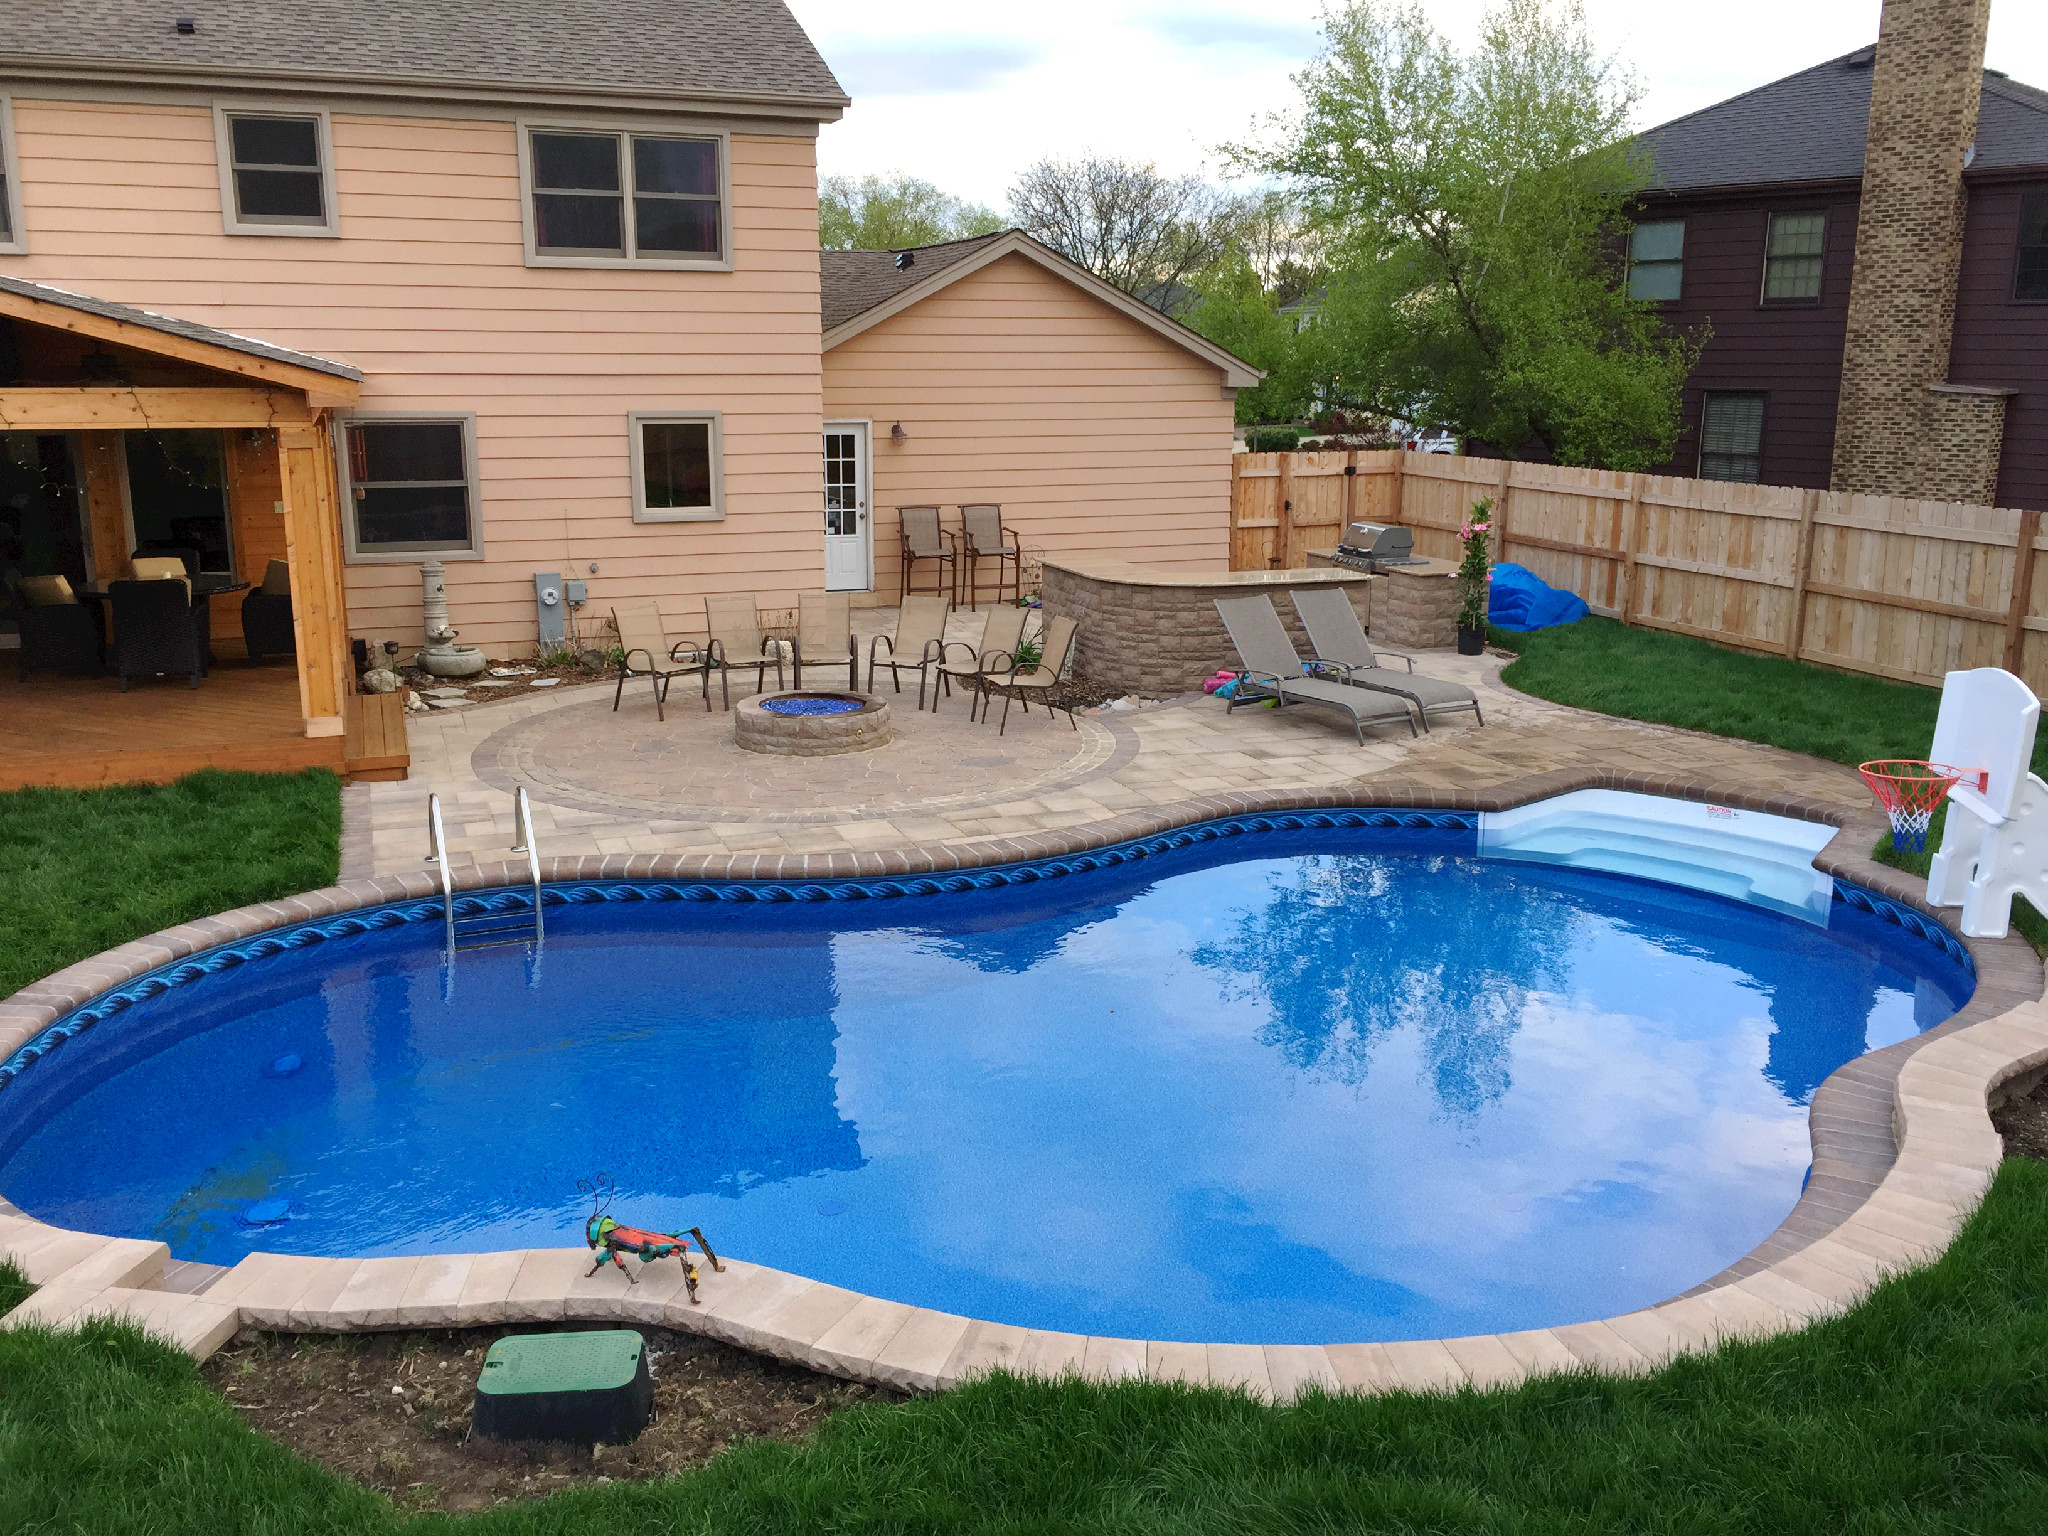 How Much Does a Chicagoland Pool Deck Cost? | Archadeck Outdoor Living